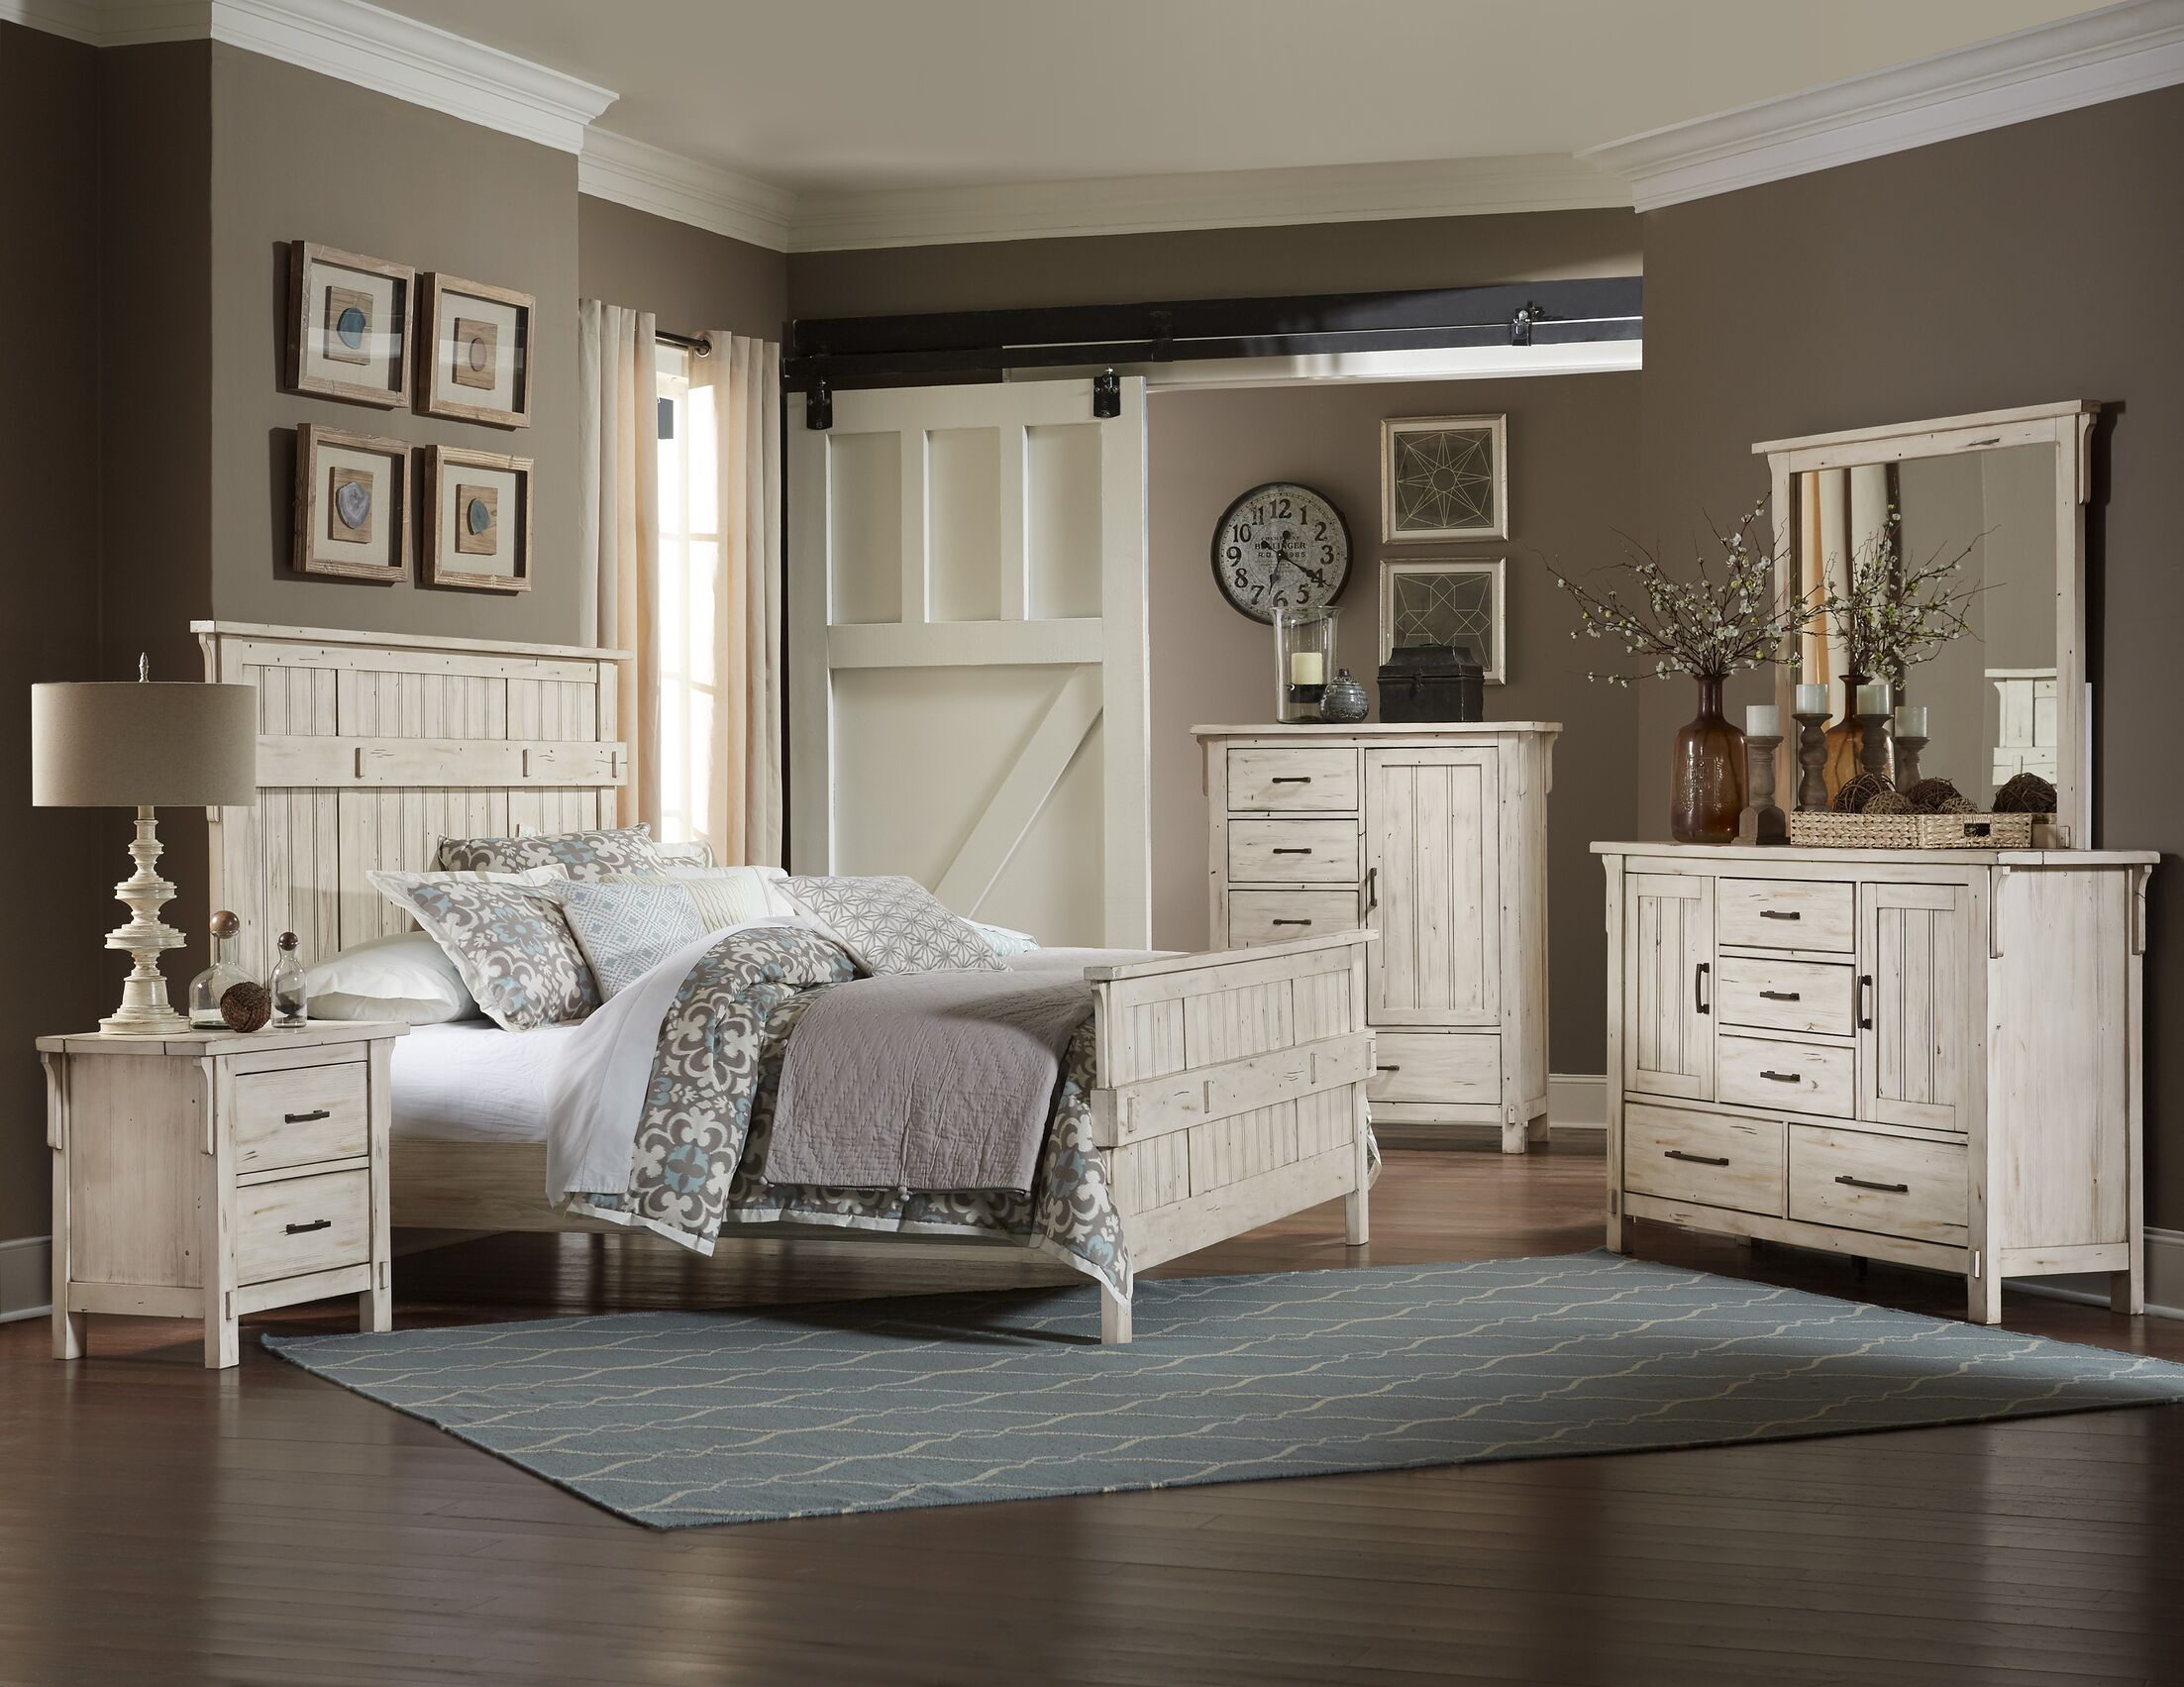 Baird 2 Drawer Nightstand Color: Antique White